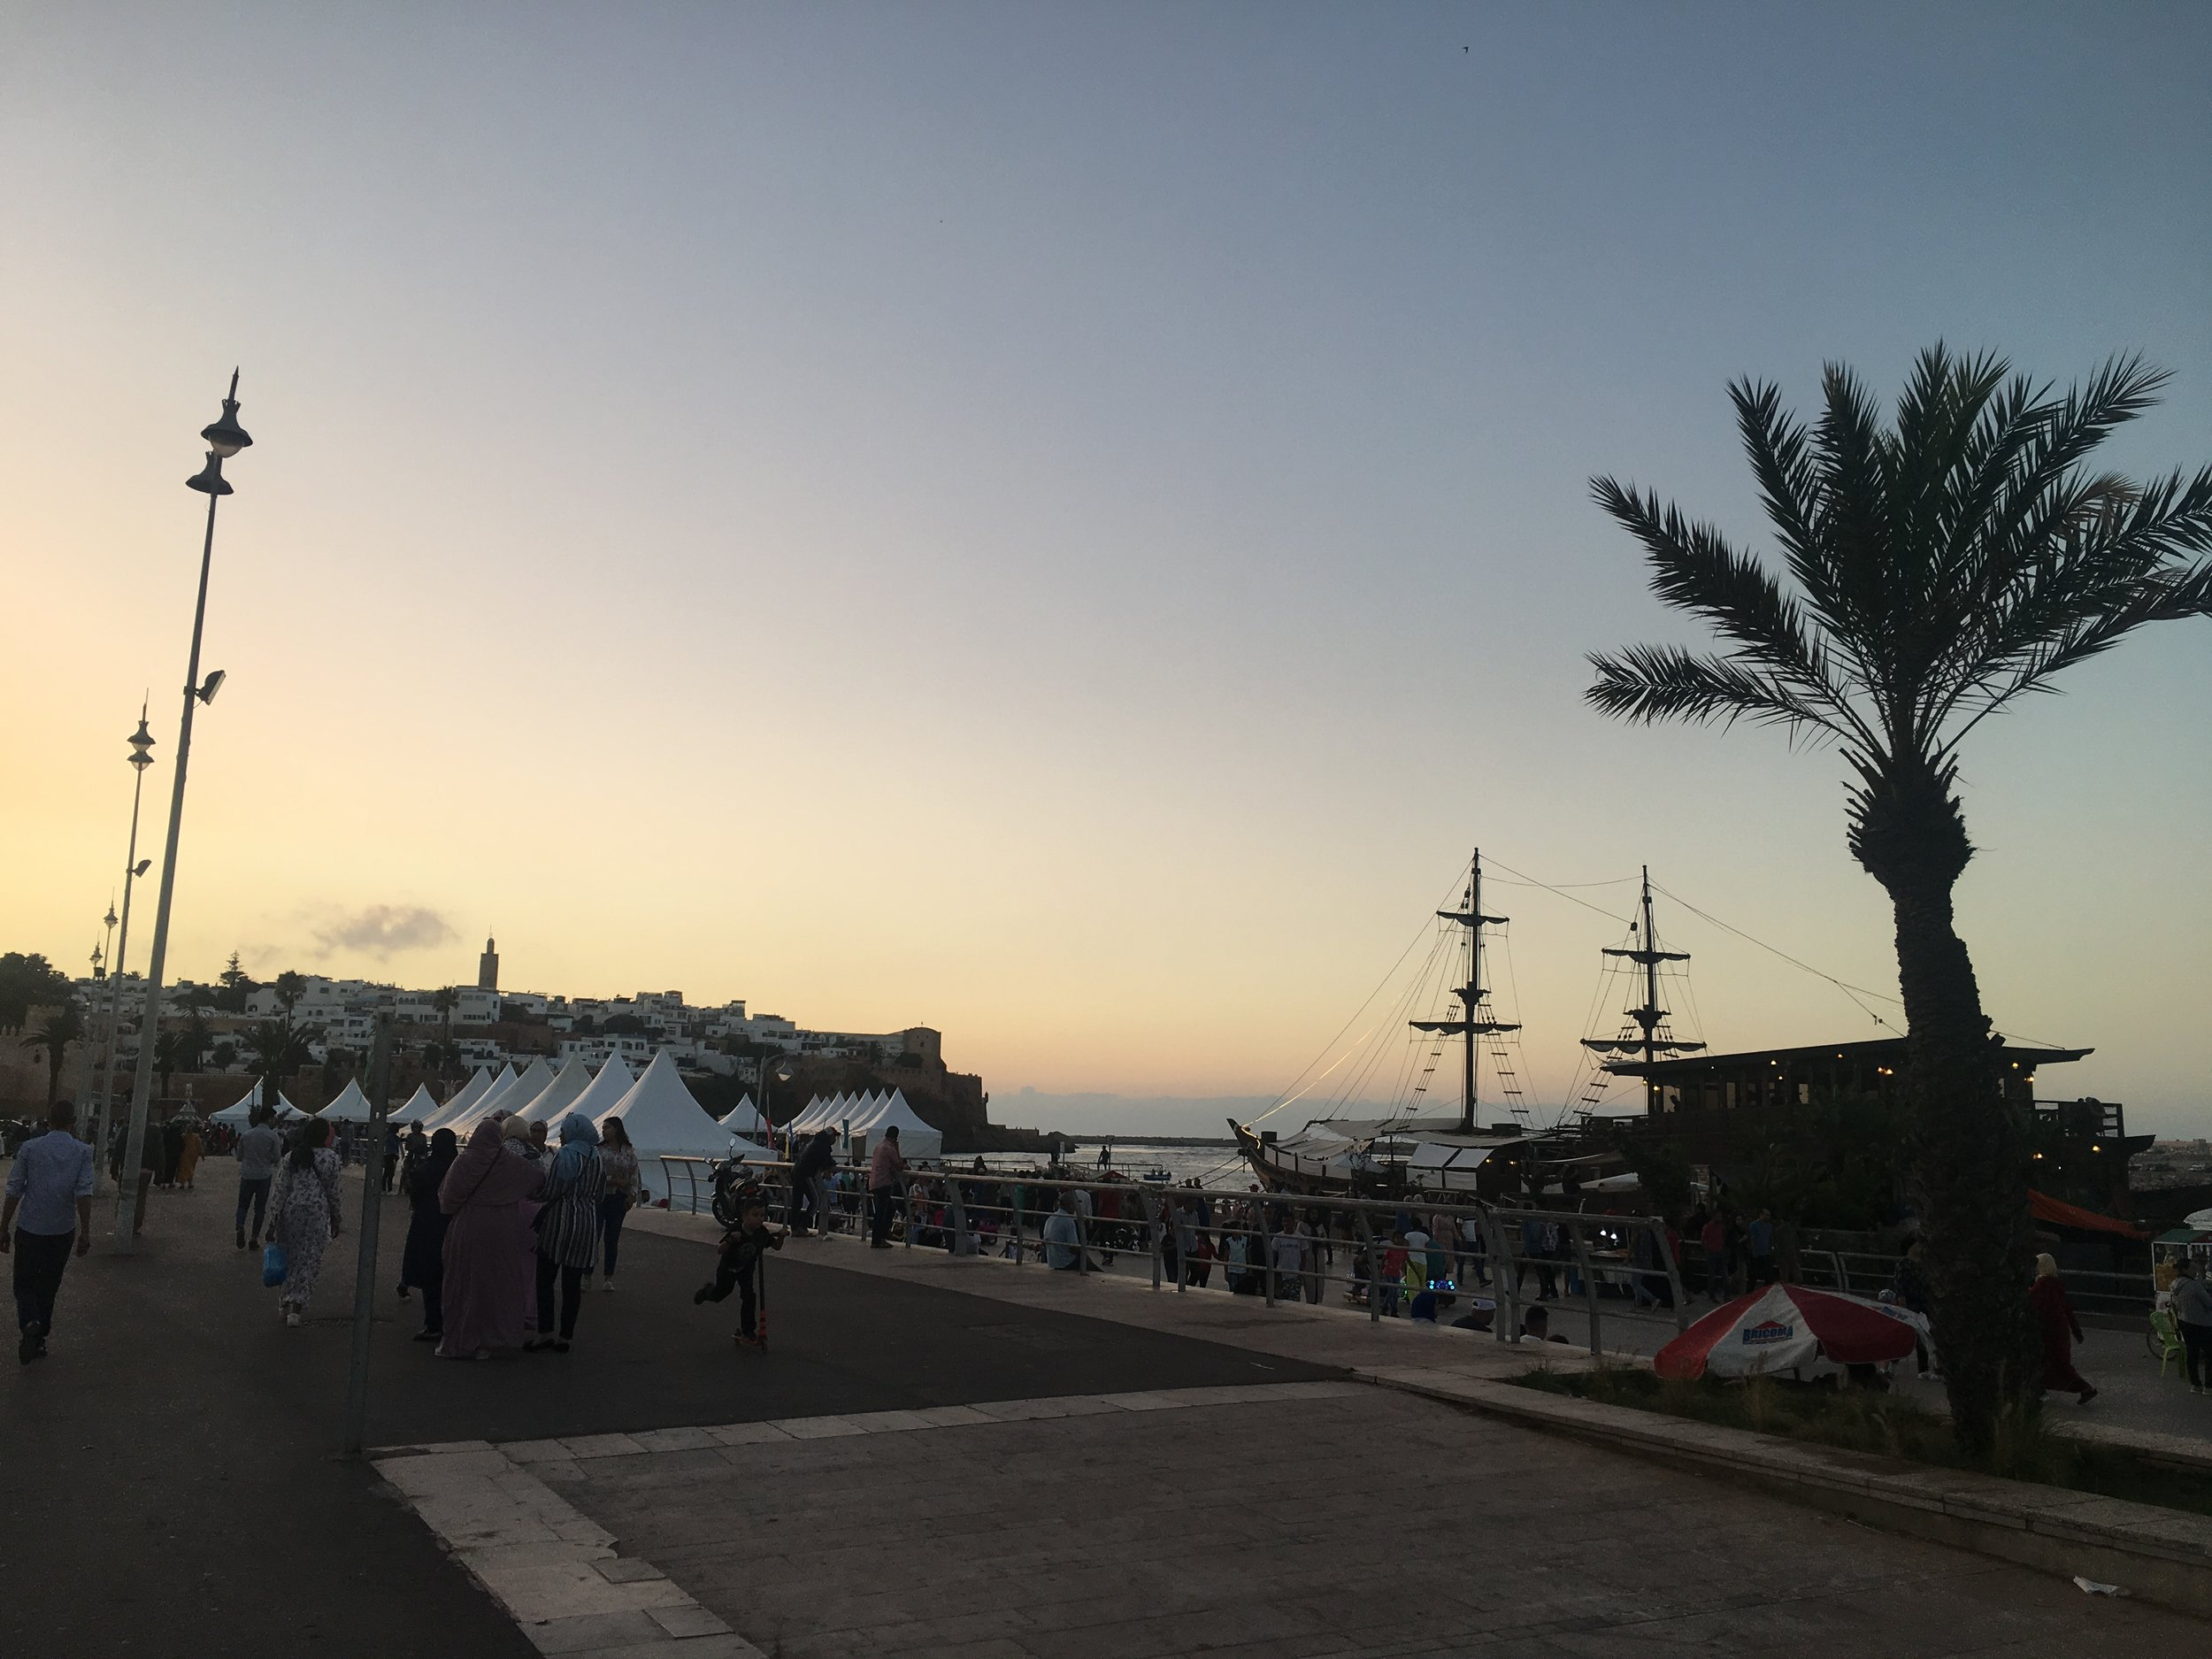 The riverfront in Rabat is a popular gathering place in the evening. Rowboat ferries bring people from Salé to join as well.